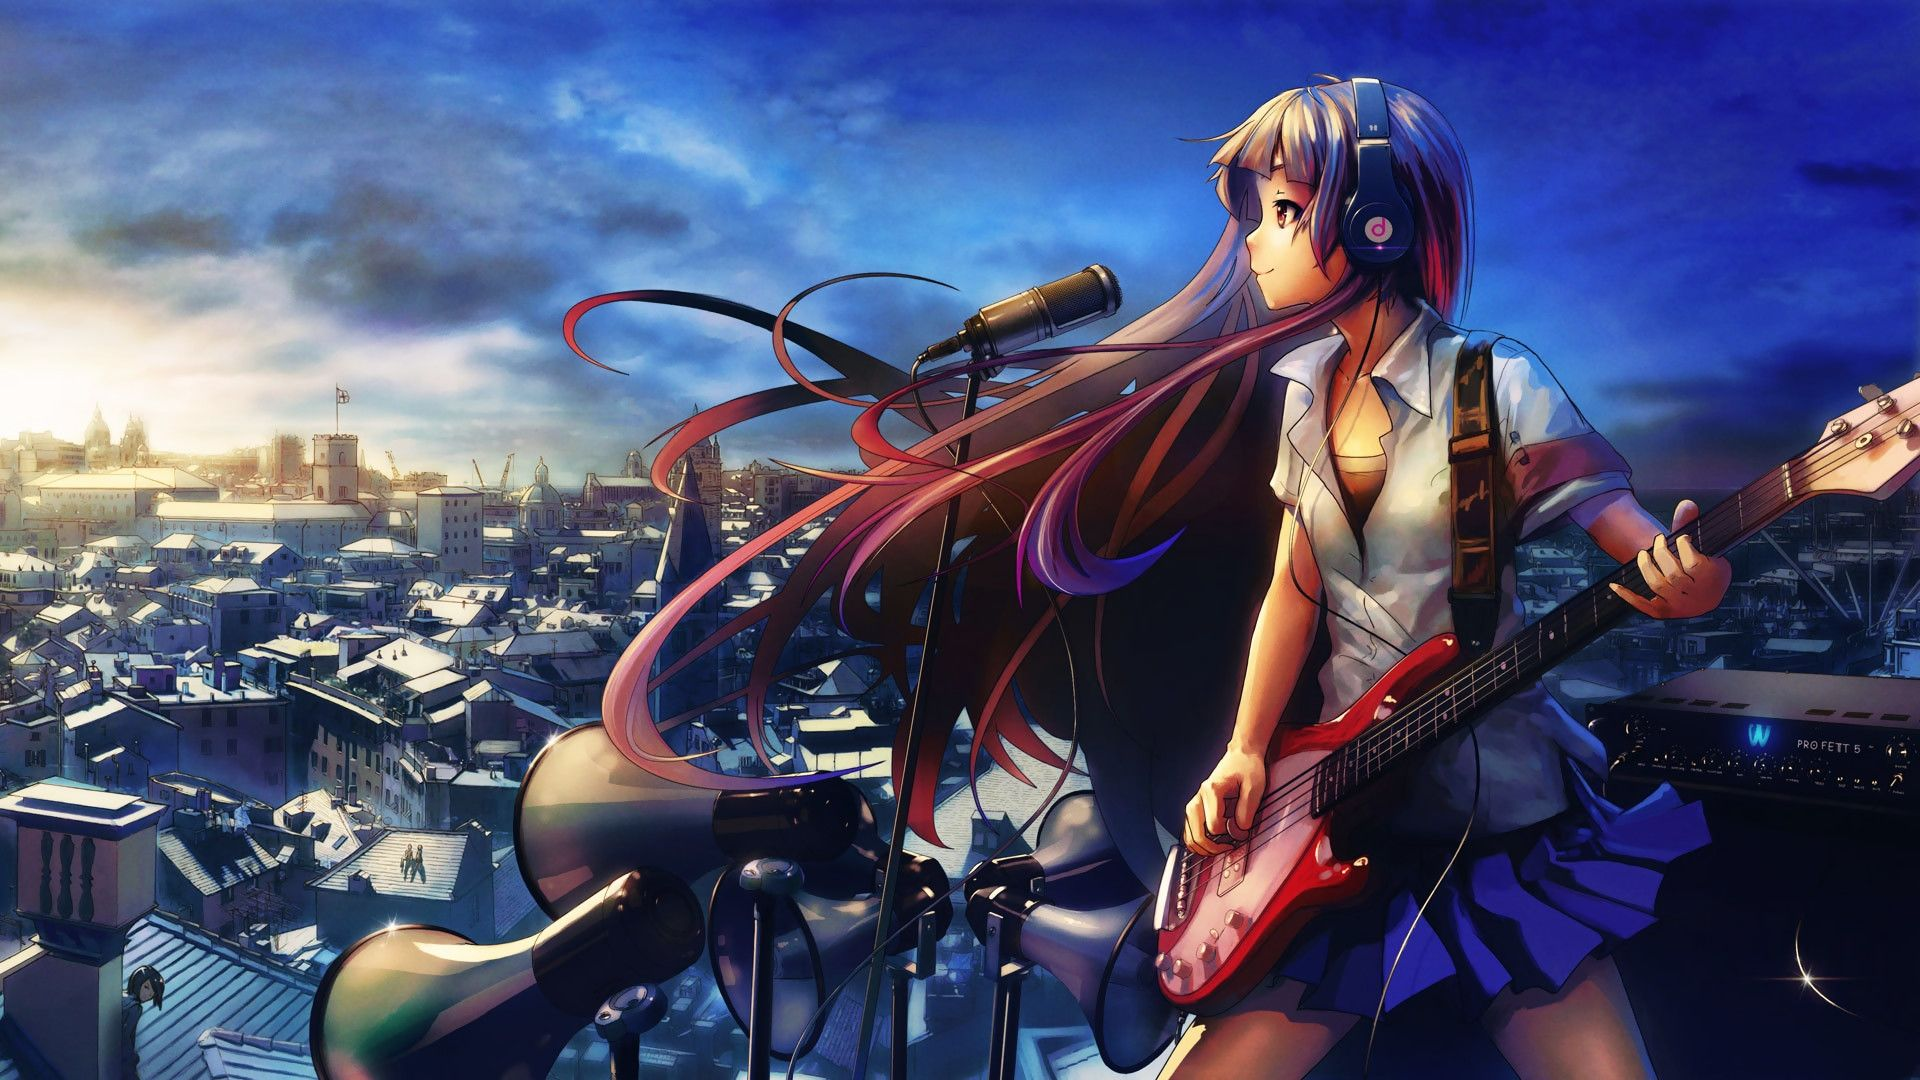 Download Wallpaper 1920x1080 Girl, Guitar, Microphone